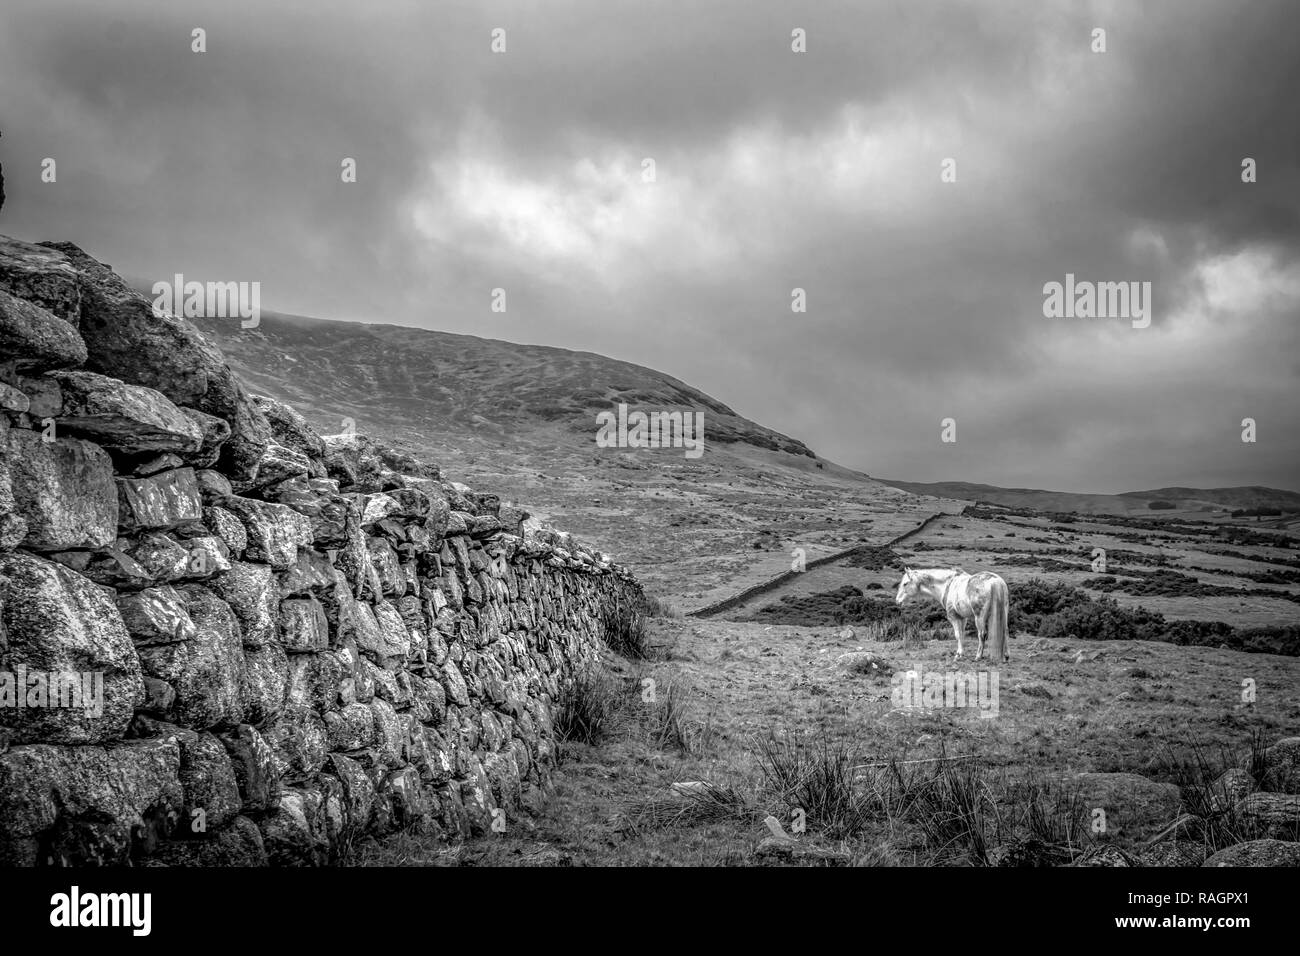 This is a picture of a stone wall in the Mourne Mountains in Ireland with a white horse standing in a field next to it - Stock Image